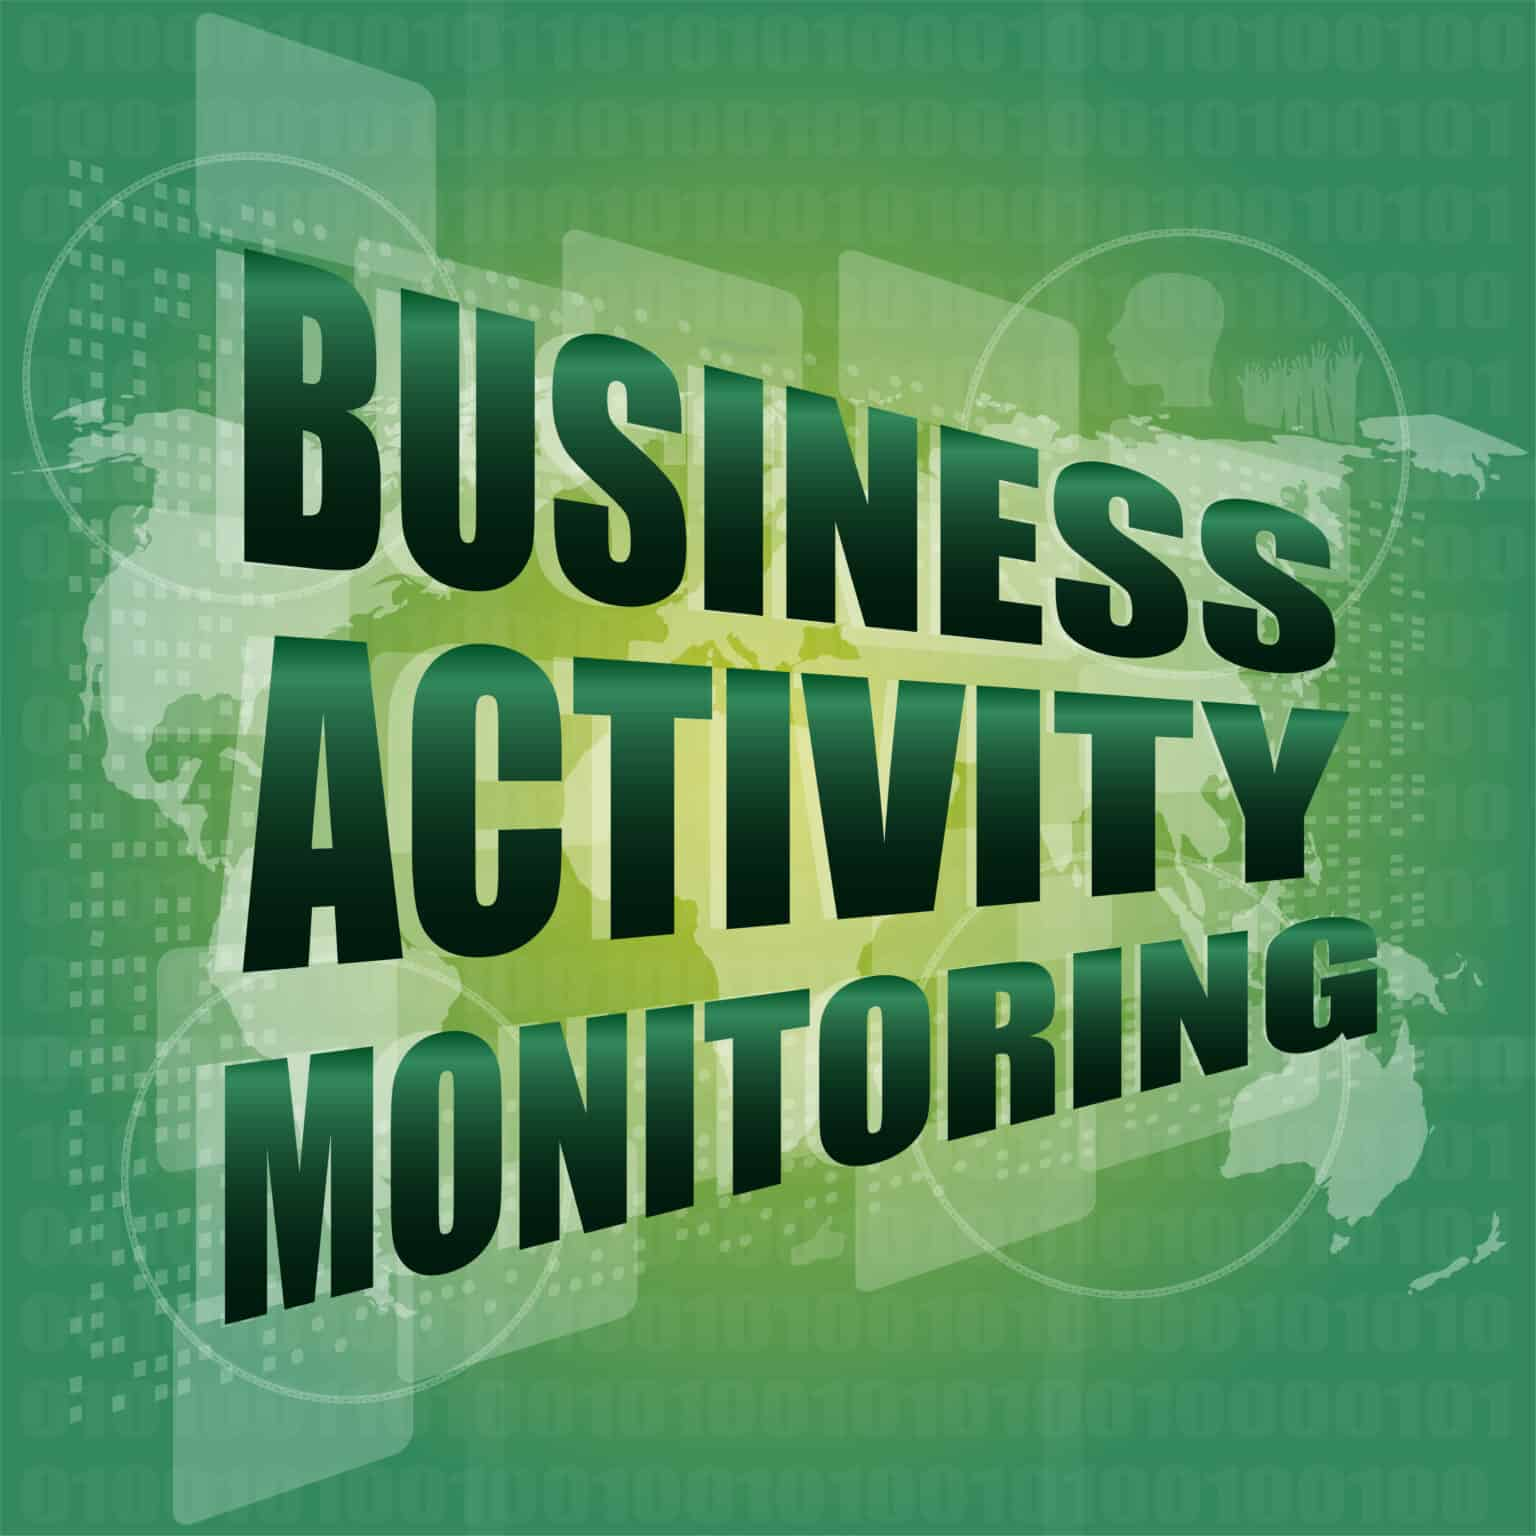 business concept, business activity monitoring digital touch screen interface